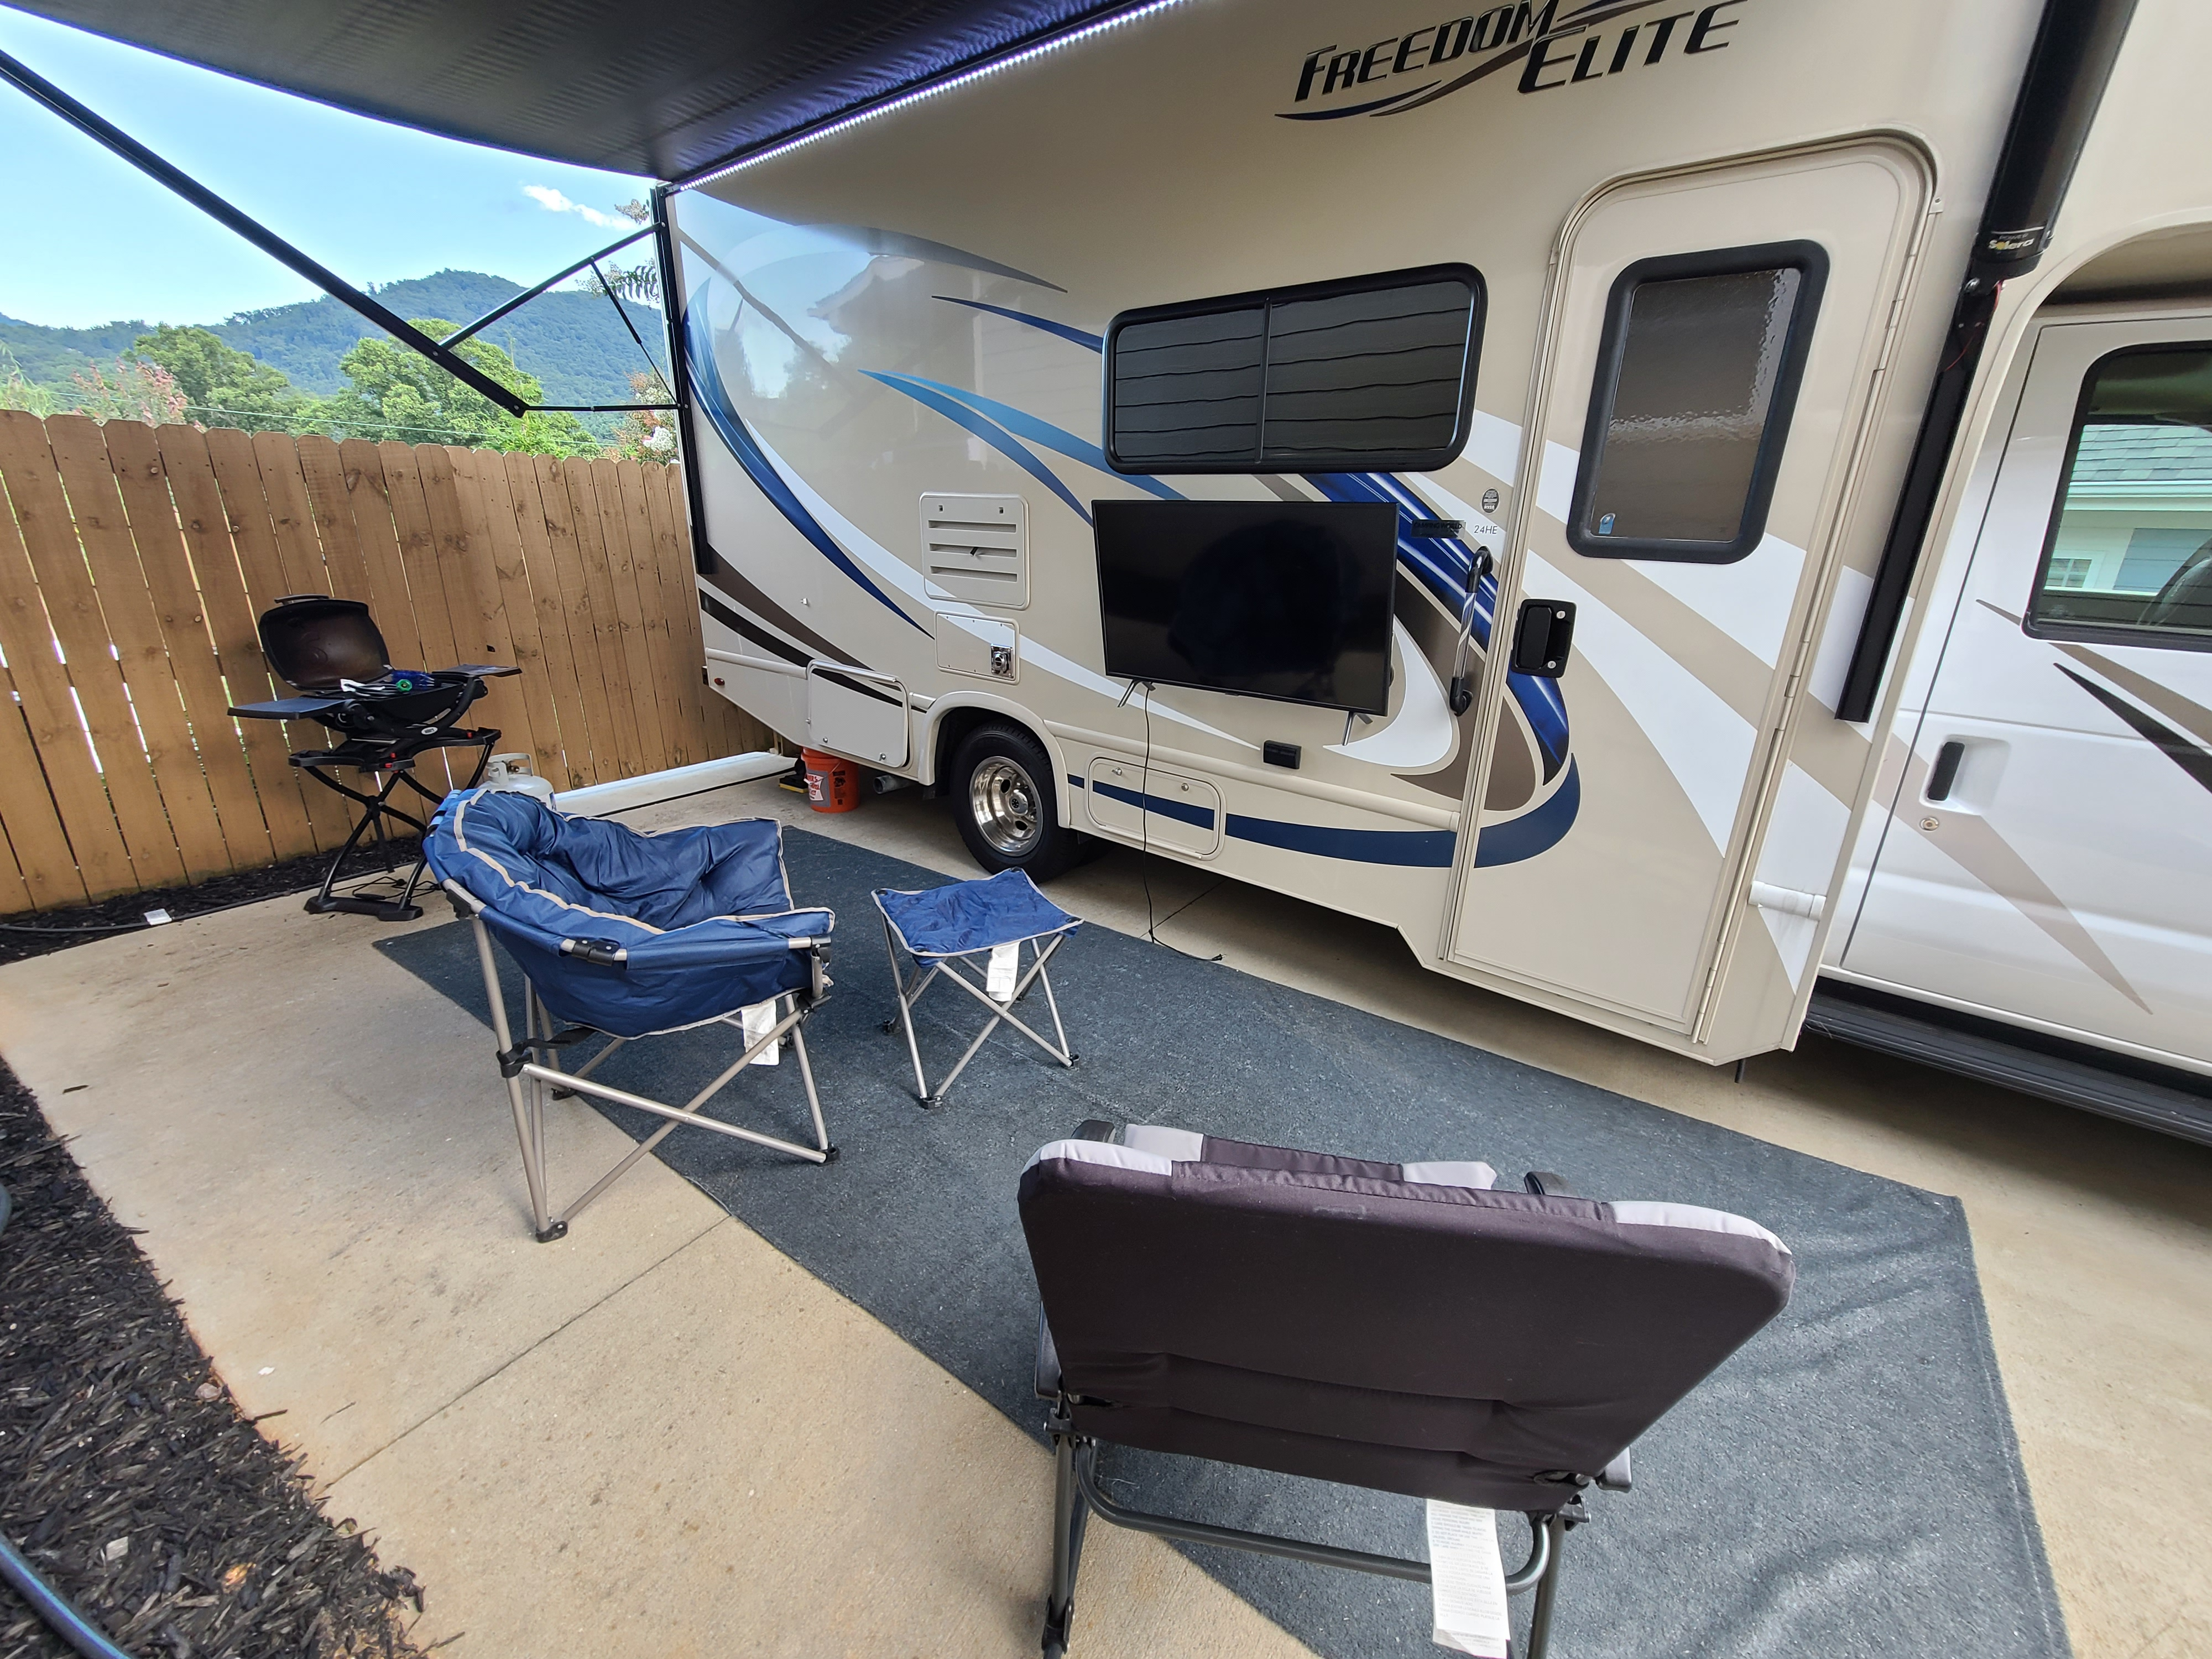 Included in rental price. Thor Motor Coach Freedom Elite 2019